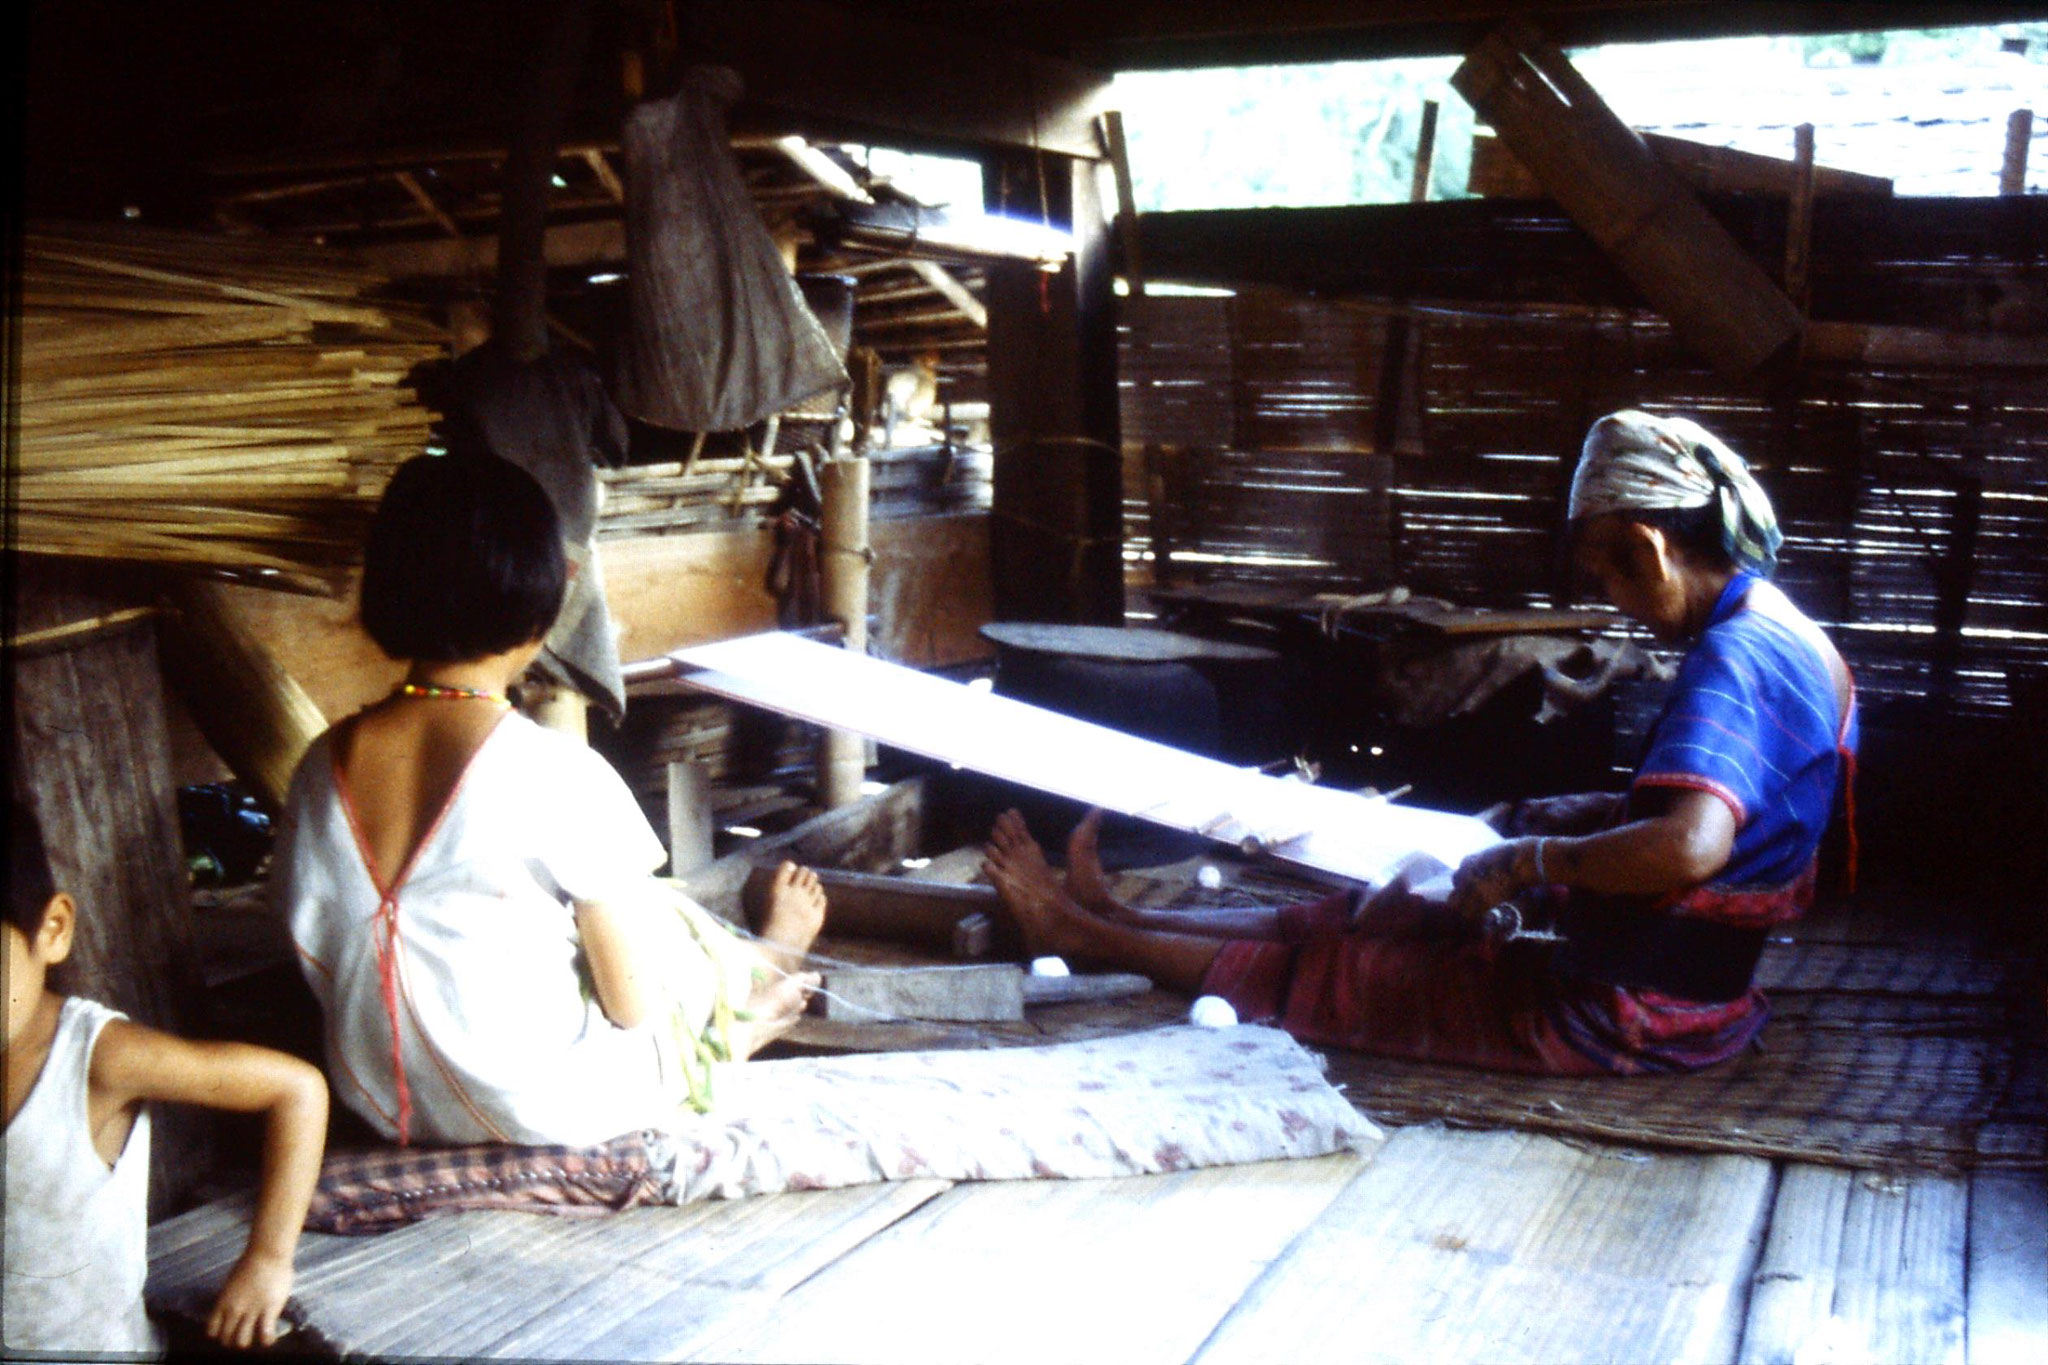 12/6/1990: 33: Trek - Hue Kom Karen village weaving